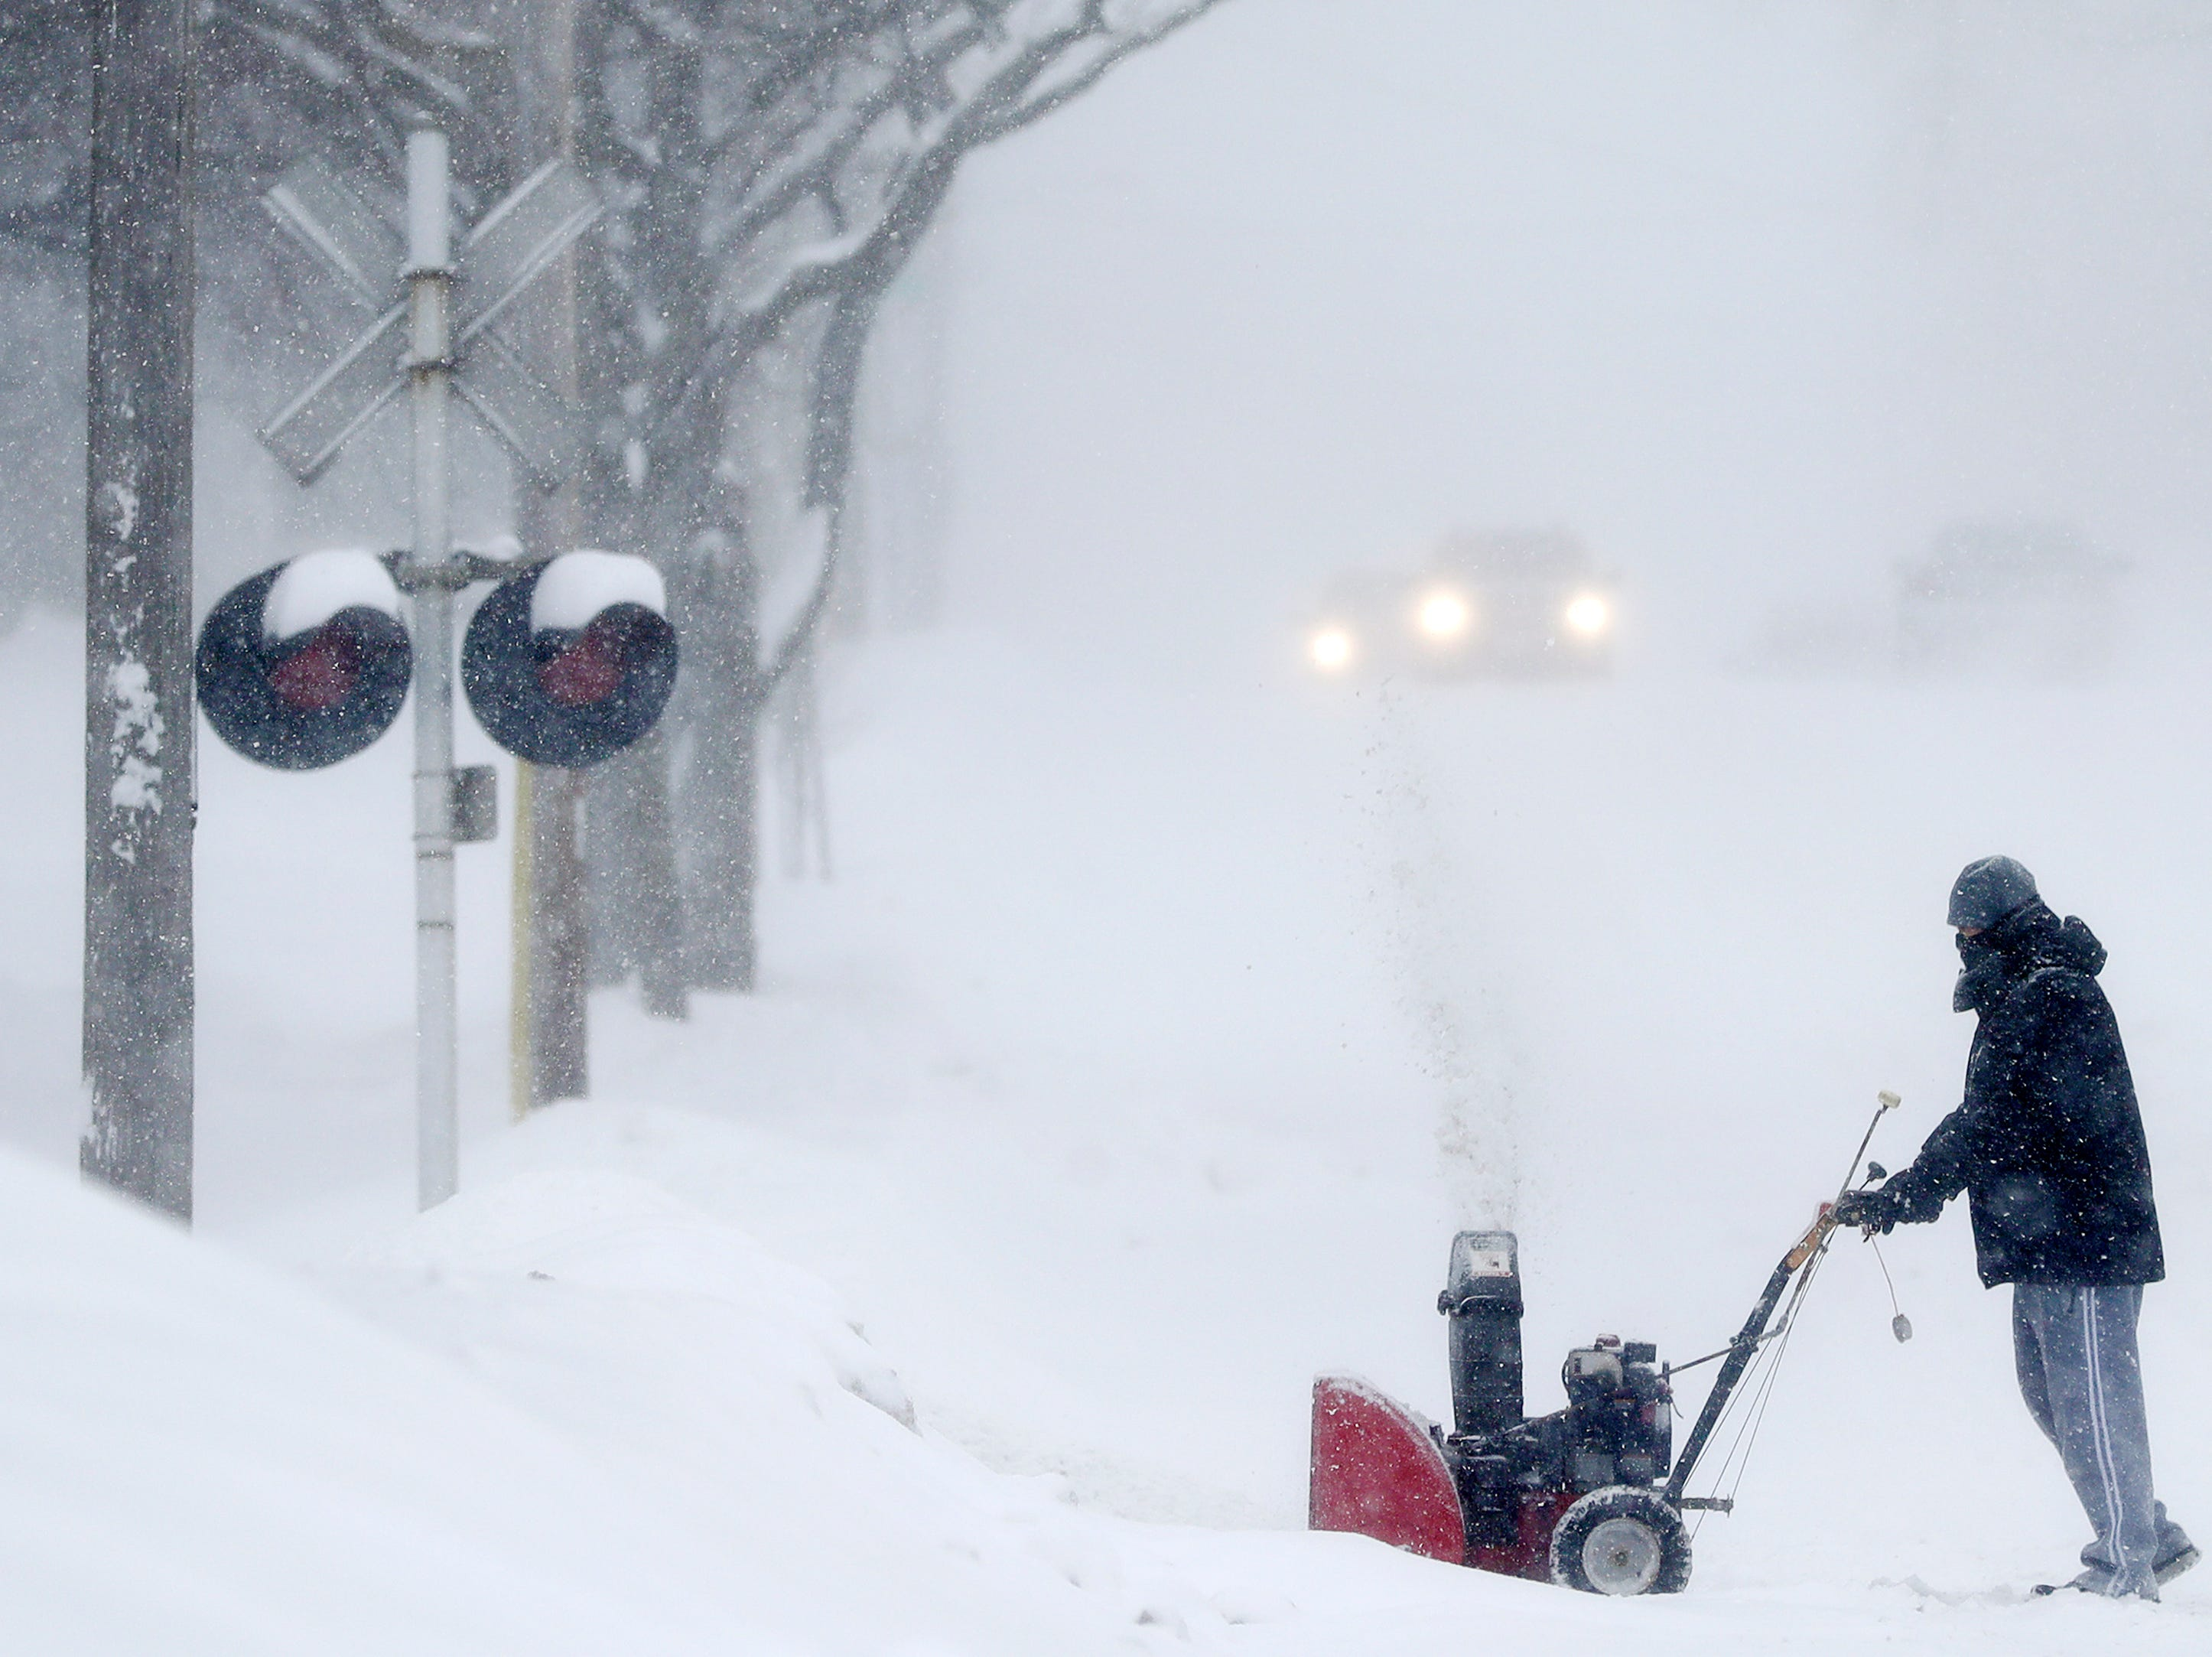 A resident uses a snowblower on his driveway during a snowstorm on Monday, January 28, 2019 in Green Bay, Wis.